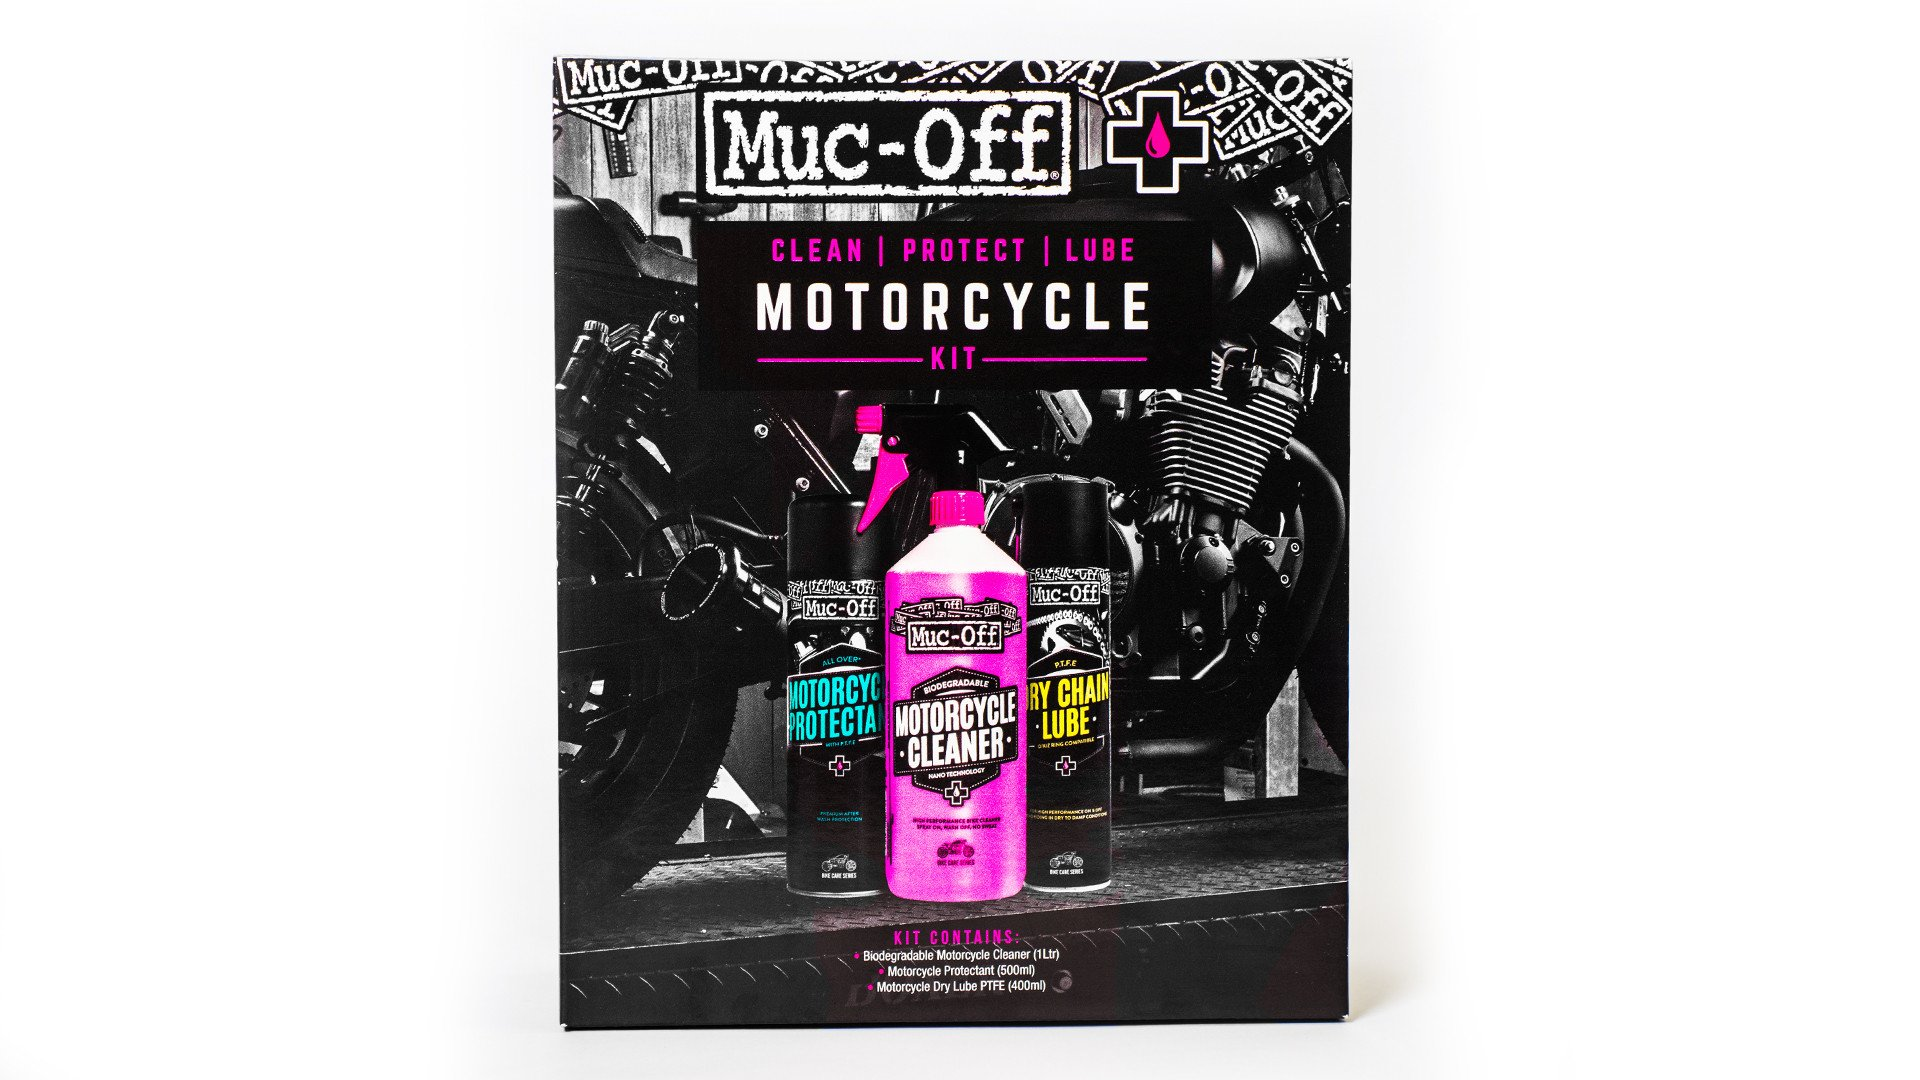 672 Muc-Off Clean Protect Lube Motorcycle Kit